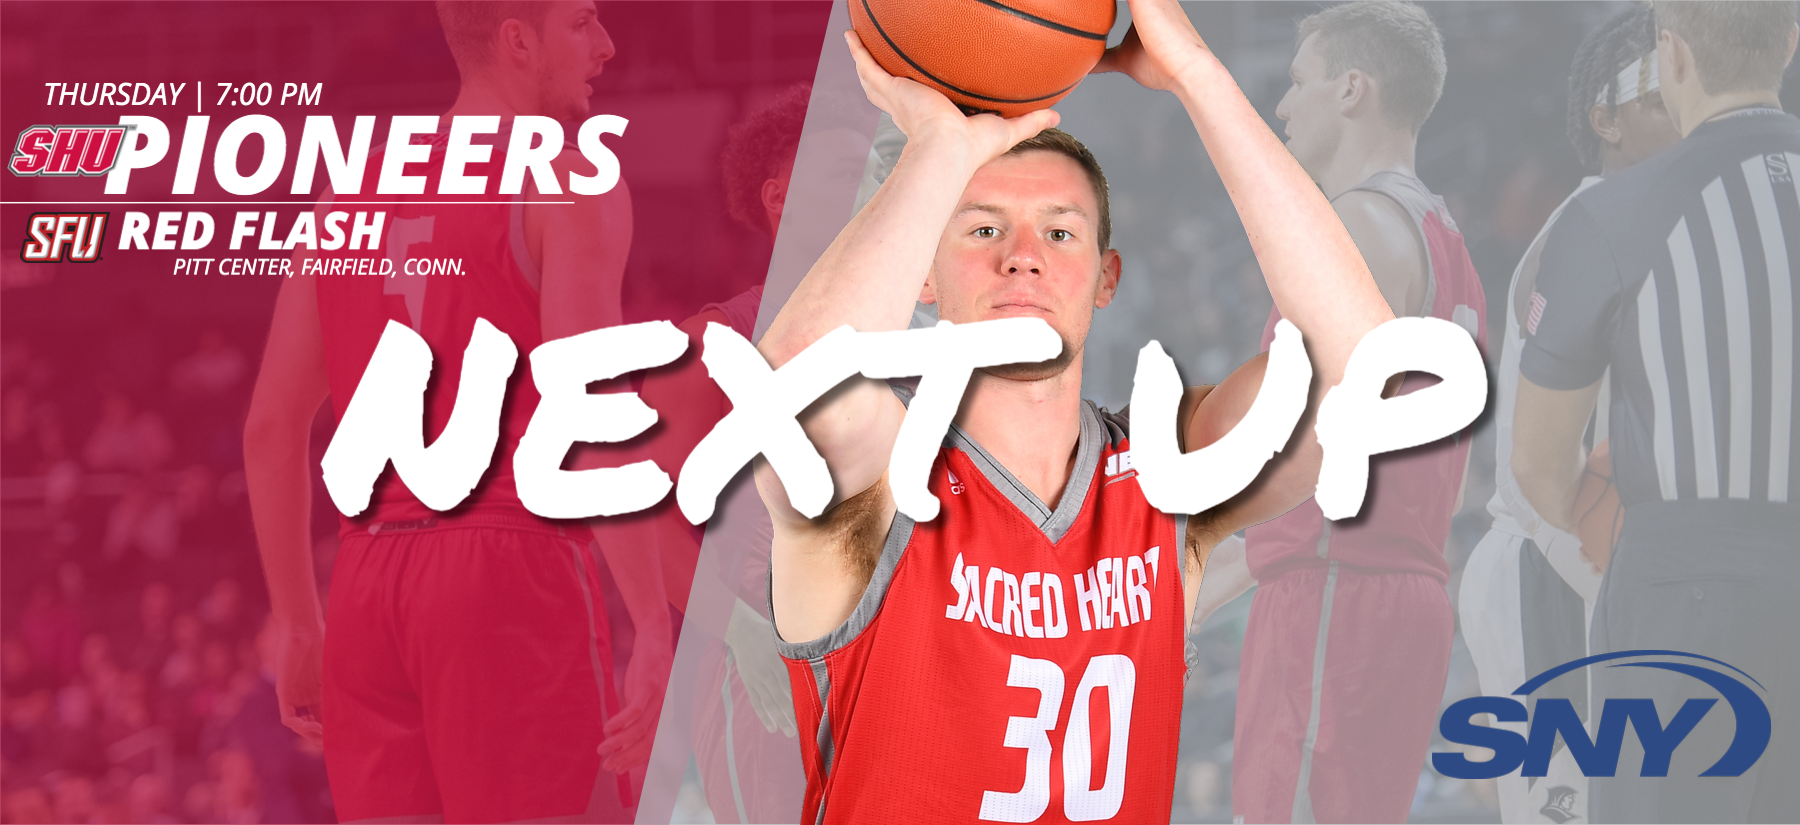 Kinnon LaRose had his second double-double of the year in the Pioneers win at St. Francis Brooklyn in SHU's last outing. The Pioneers begin a three-game homestead on Thursday night on SNY. (Photos: Steve McLaughlin).